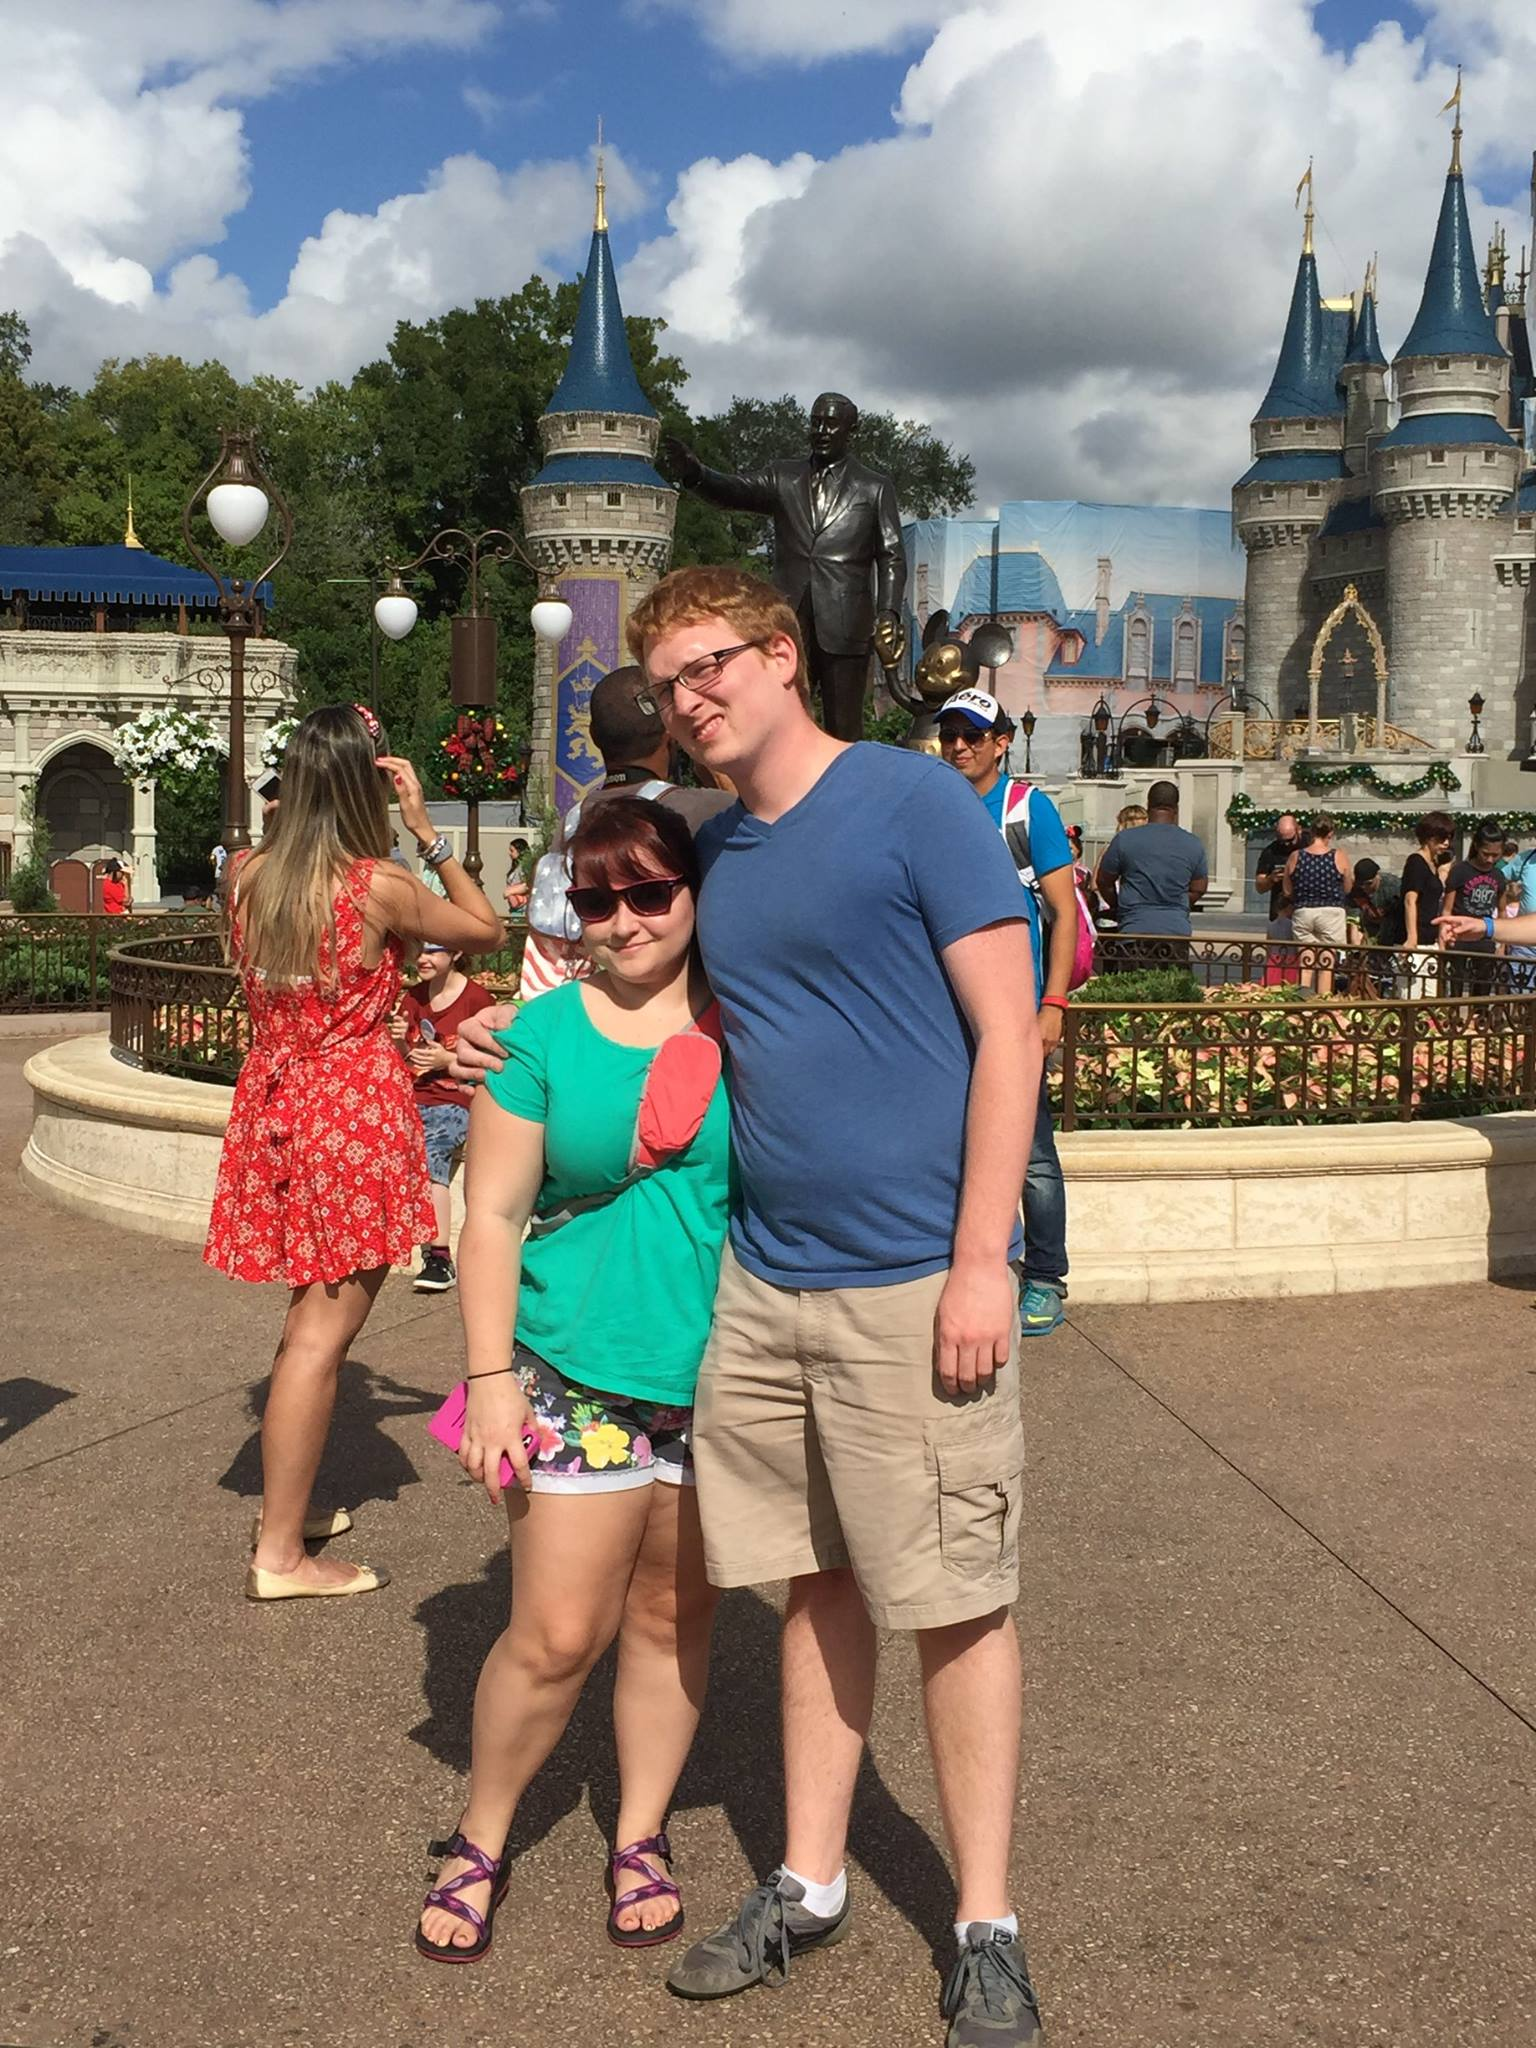 Terrific Tuesdays: Getting Engaged at Walt Disney World